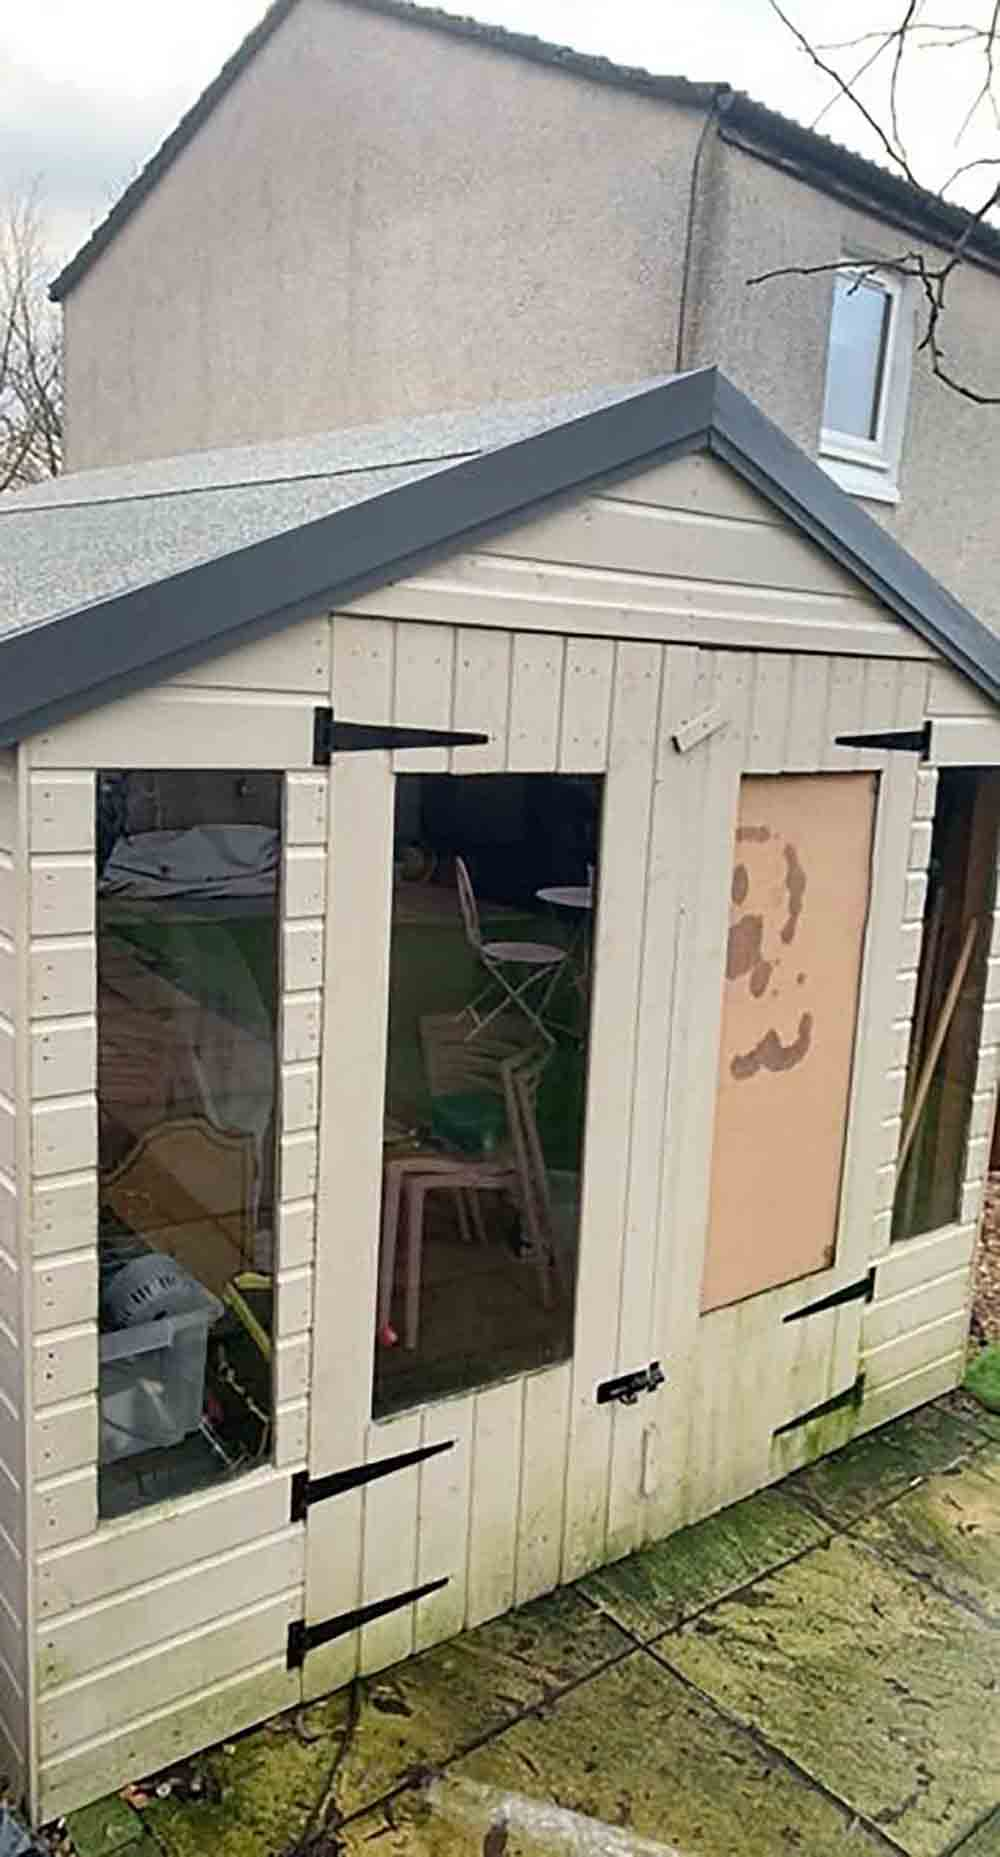 Fraser Crawford managed to capture the moment he lost control on ice and smashed through his shed- Viral Video News Scotland